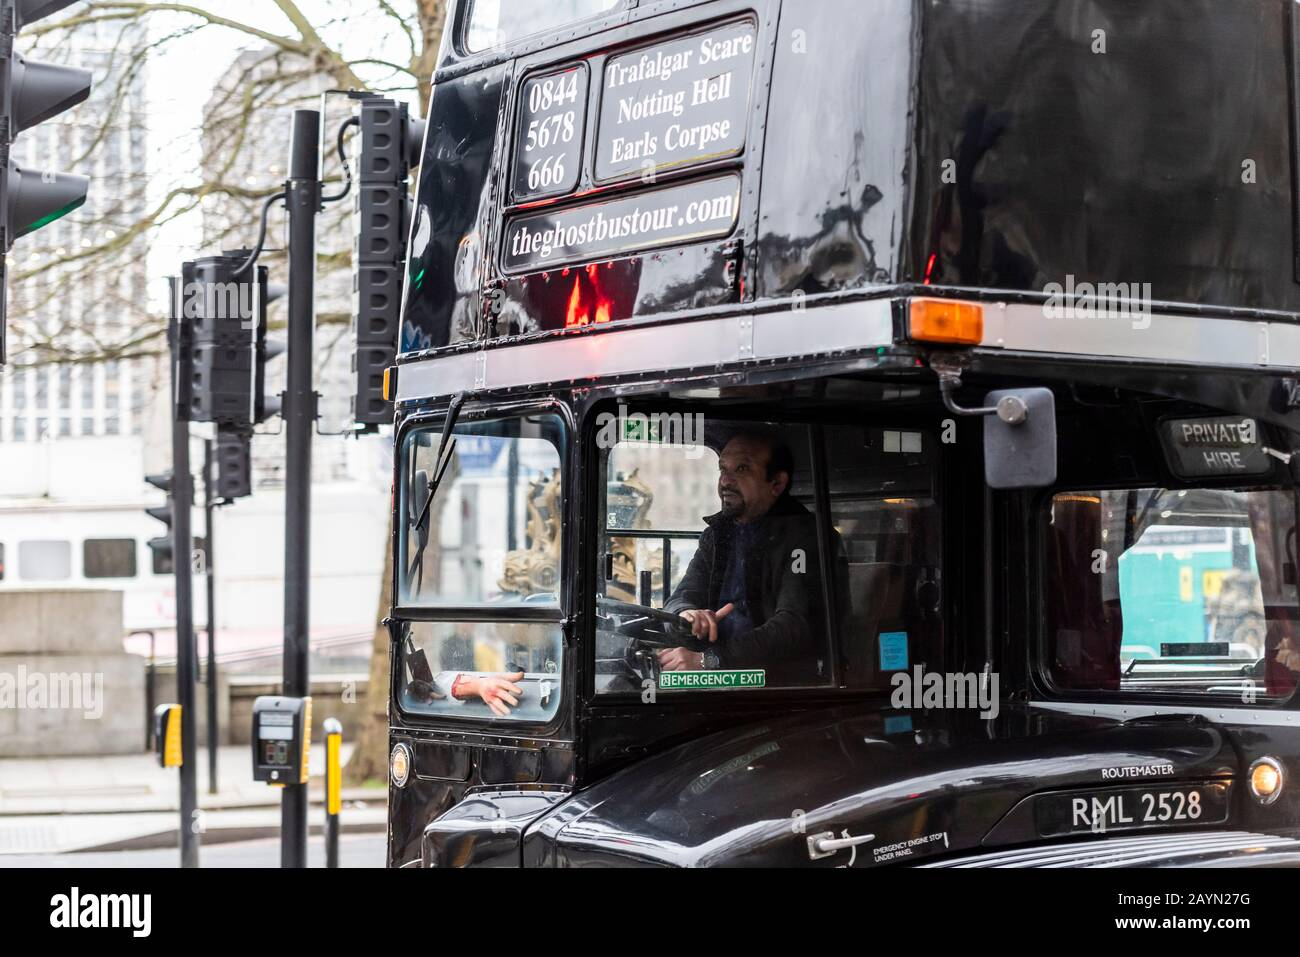 The Ghostbustour old London Routemaster bus painted black. Ghost Bus Tours retired London bus used for spooky transport around city. Dismembered arm Stock Photo